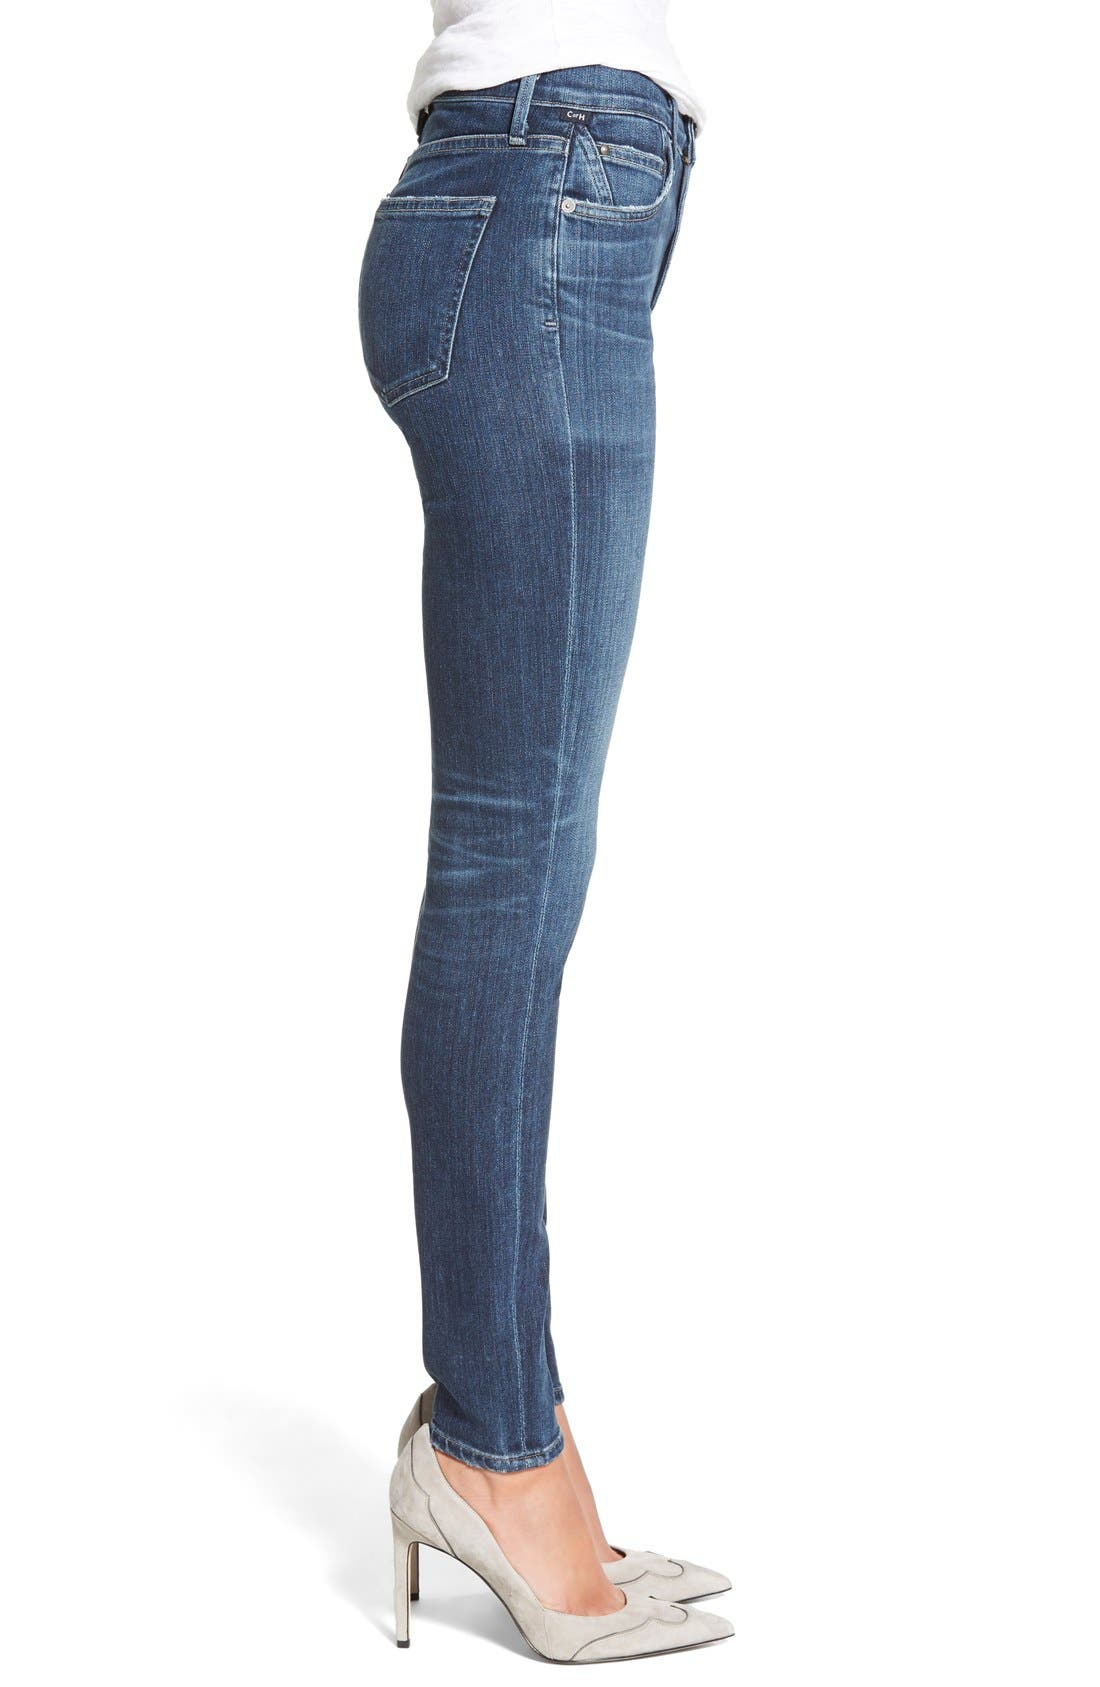 Rocket High Waist Skinny Jeans,                             Alternate thumbnail 3, color,                             Albion